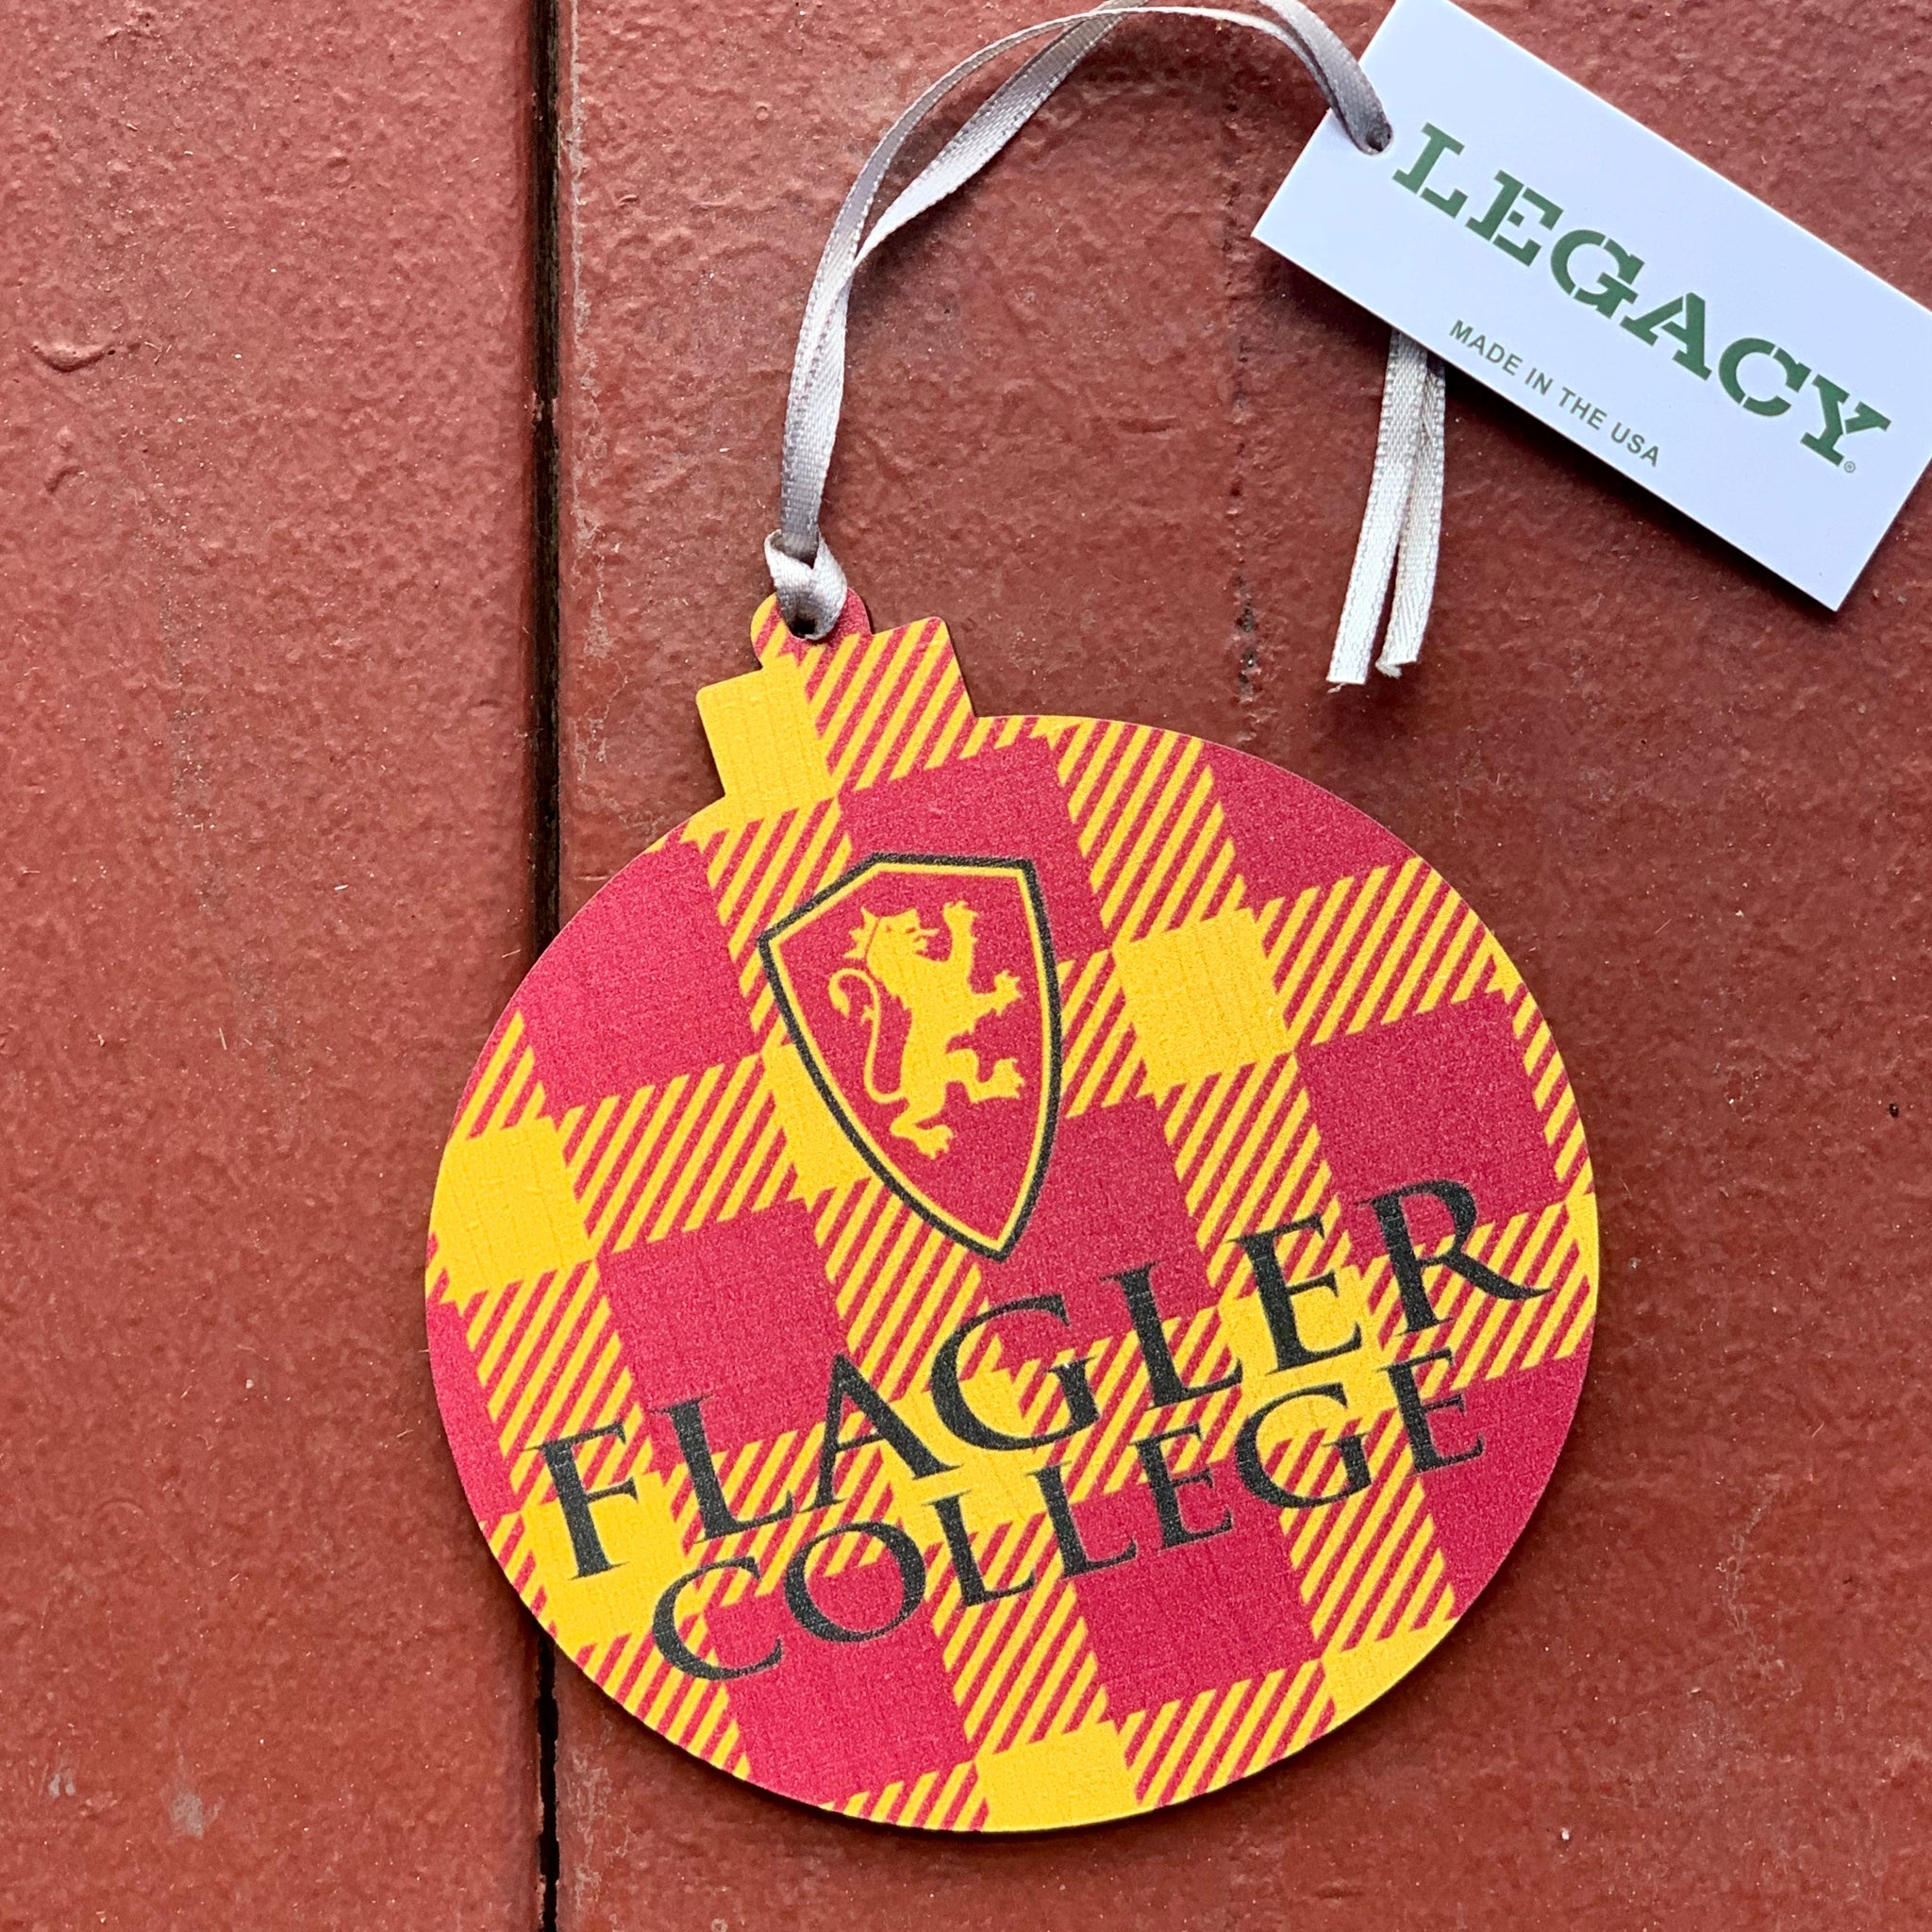 Circle shaped ornament that has red and gold plaid with red and gold lion shield and flagler college printed in black.